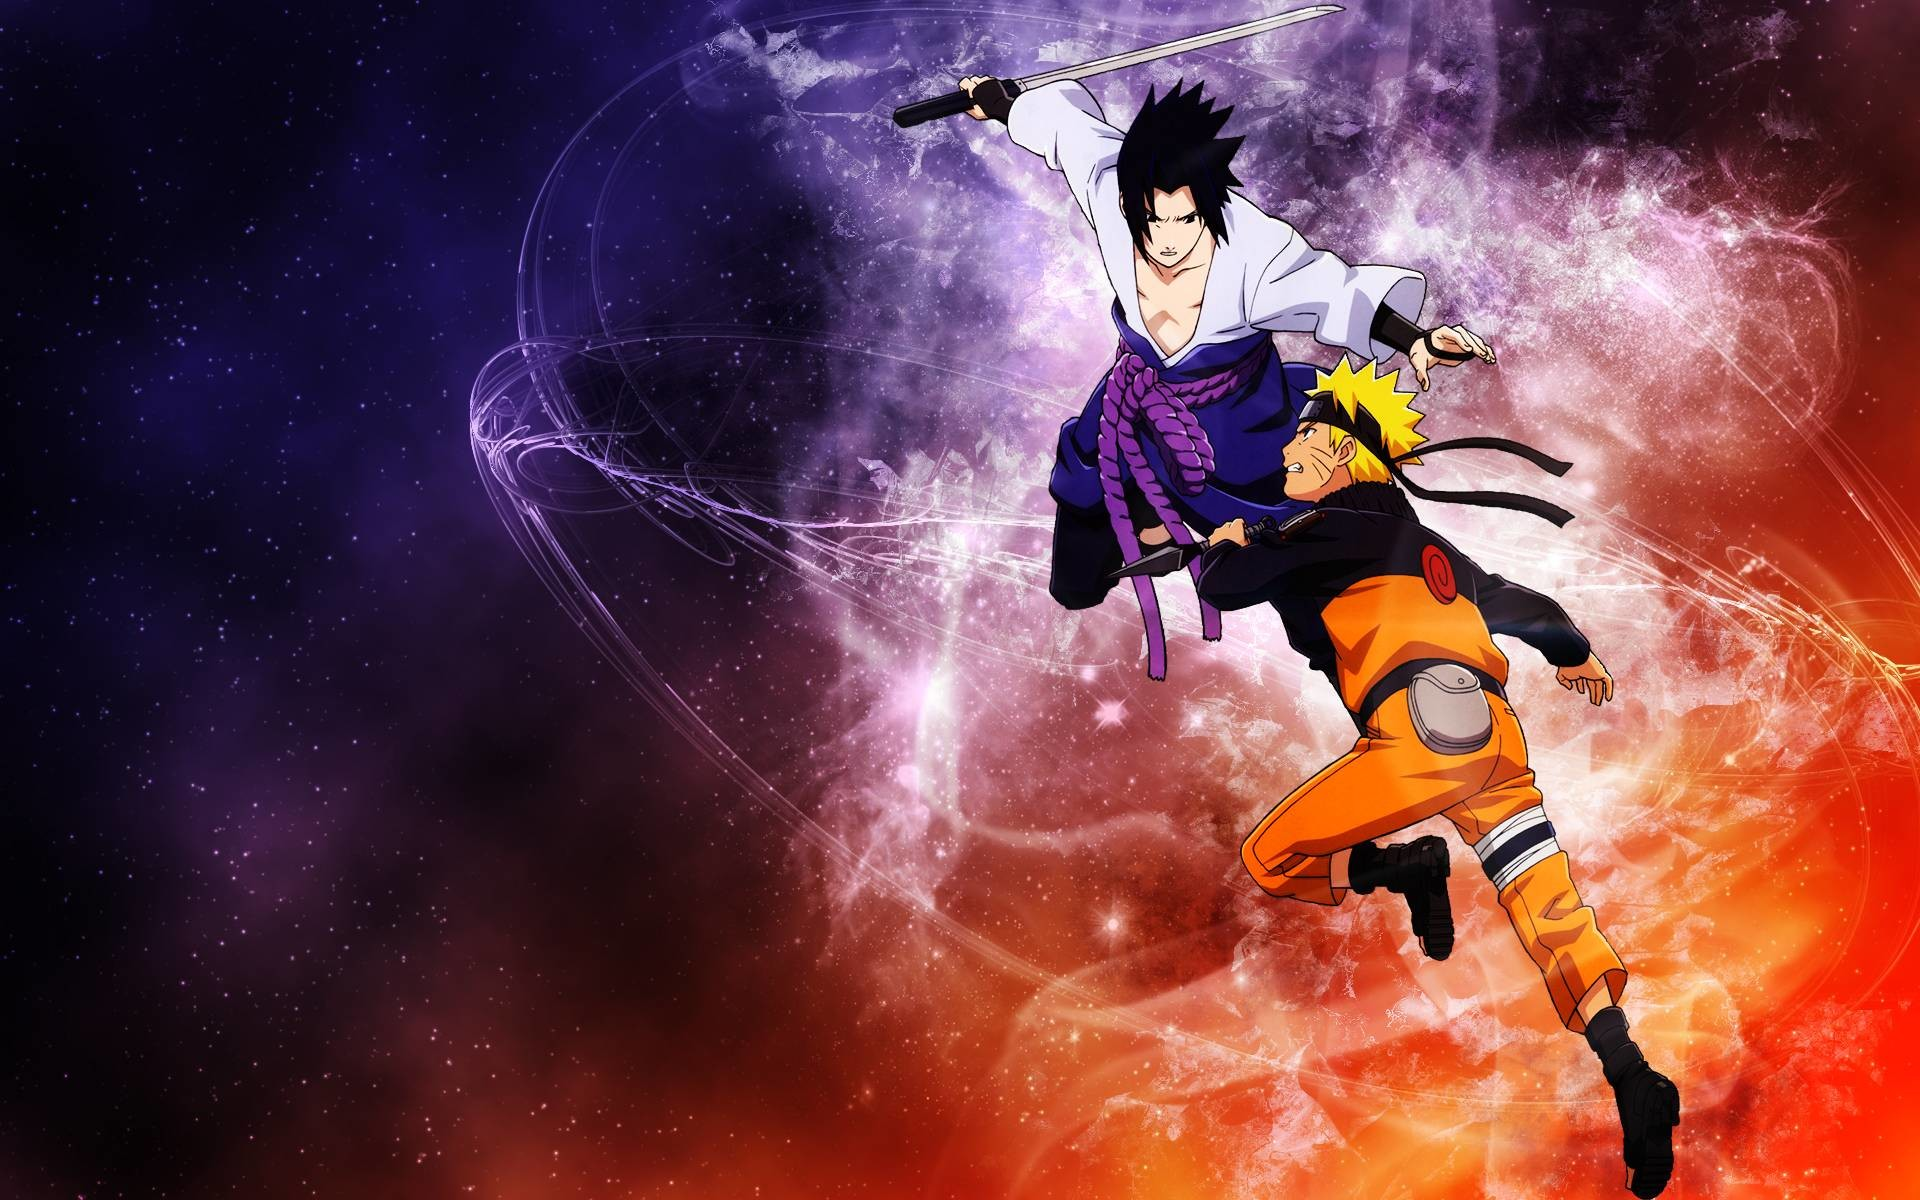 1920x1200 Sasuke and Naruto Shippuden Wallpaper HD - WallFinest